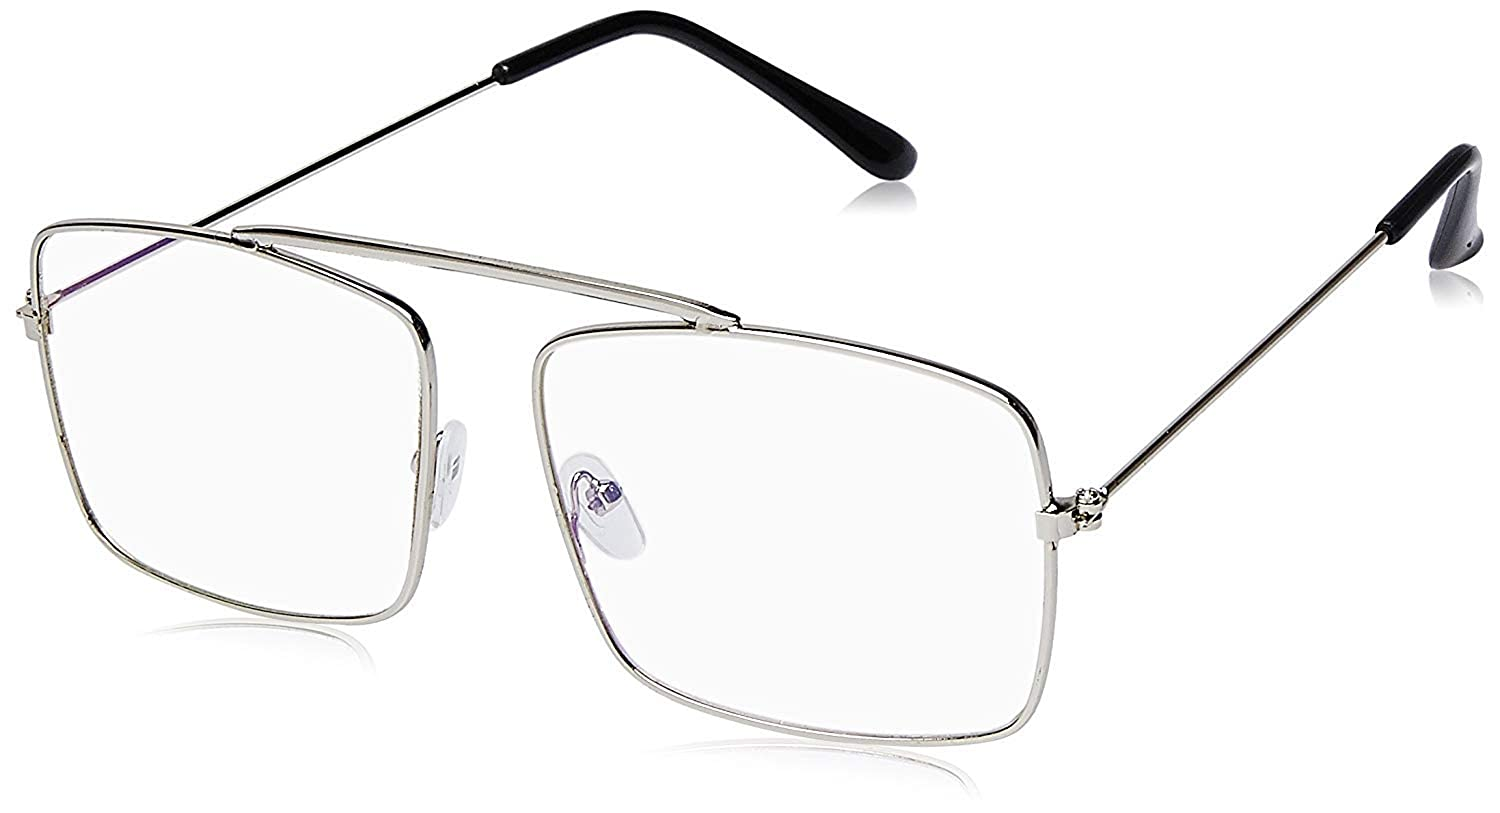 c42882085 Arzonai Raees Rectangle Shape Silver-Transparent UV Protection Sunglasses | Frame  For Men & Women [MA-9999-S3 ]: Amazon.in: Clothing & Accessories